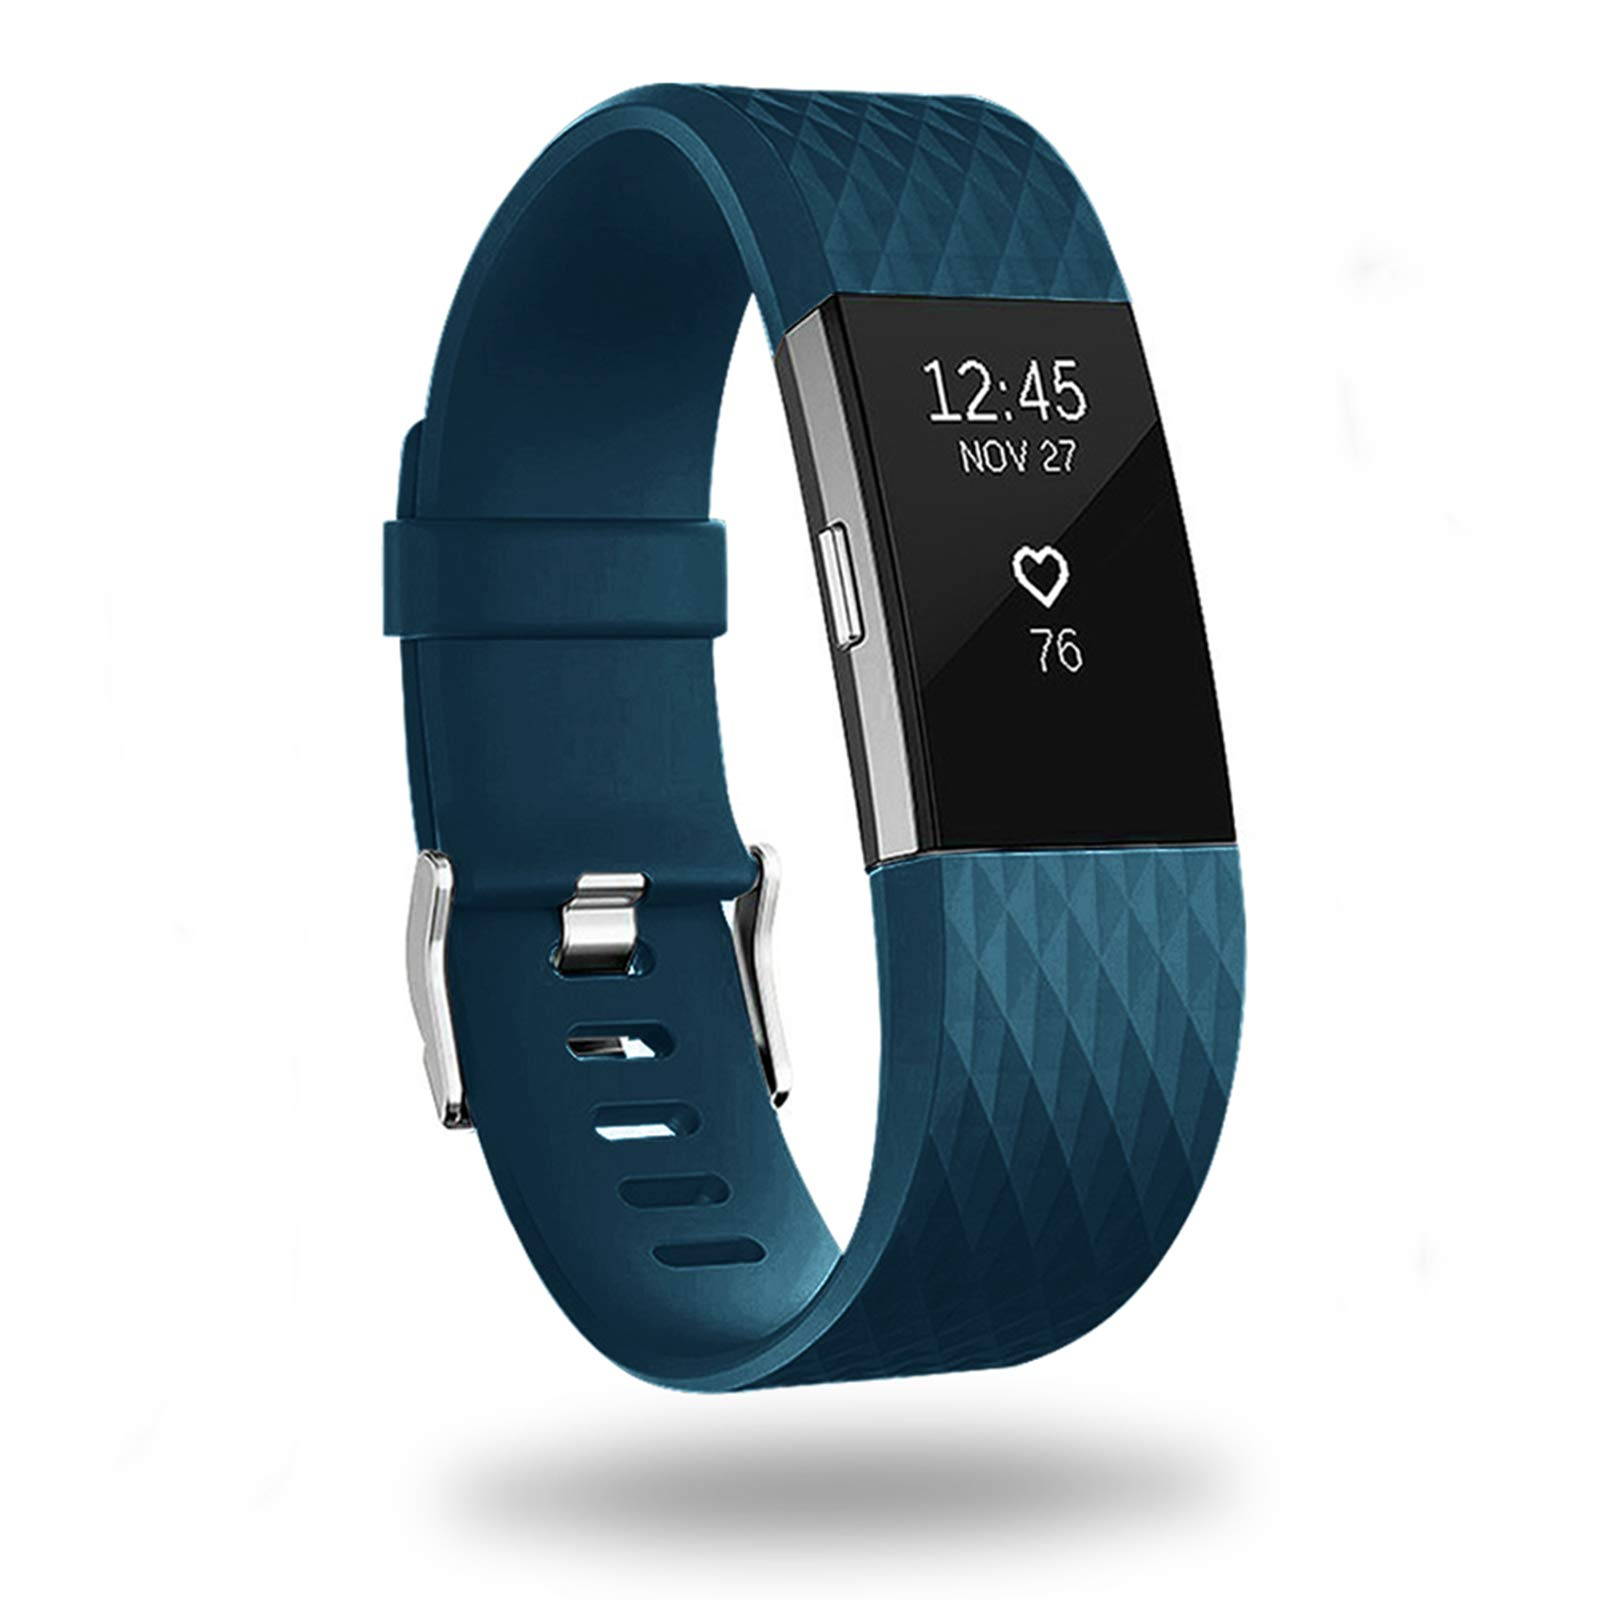 Malla Large para Fitbit Charge 2 Azul oscuro -7D3S7TRK